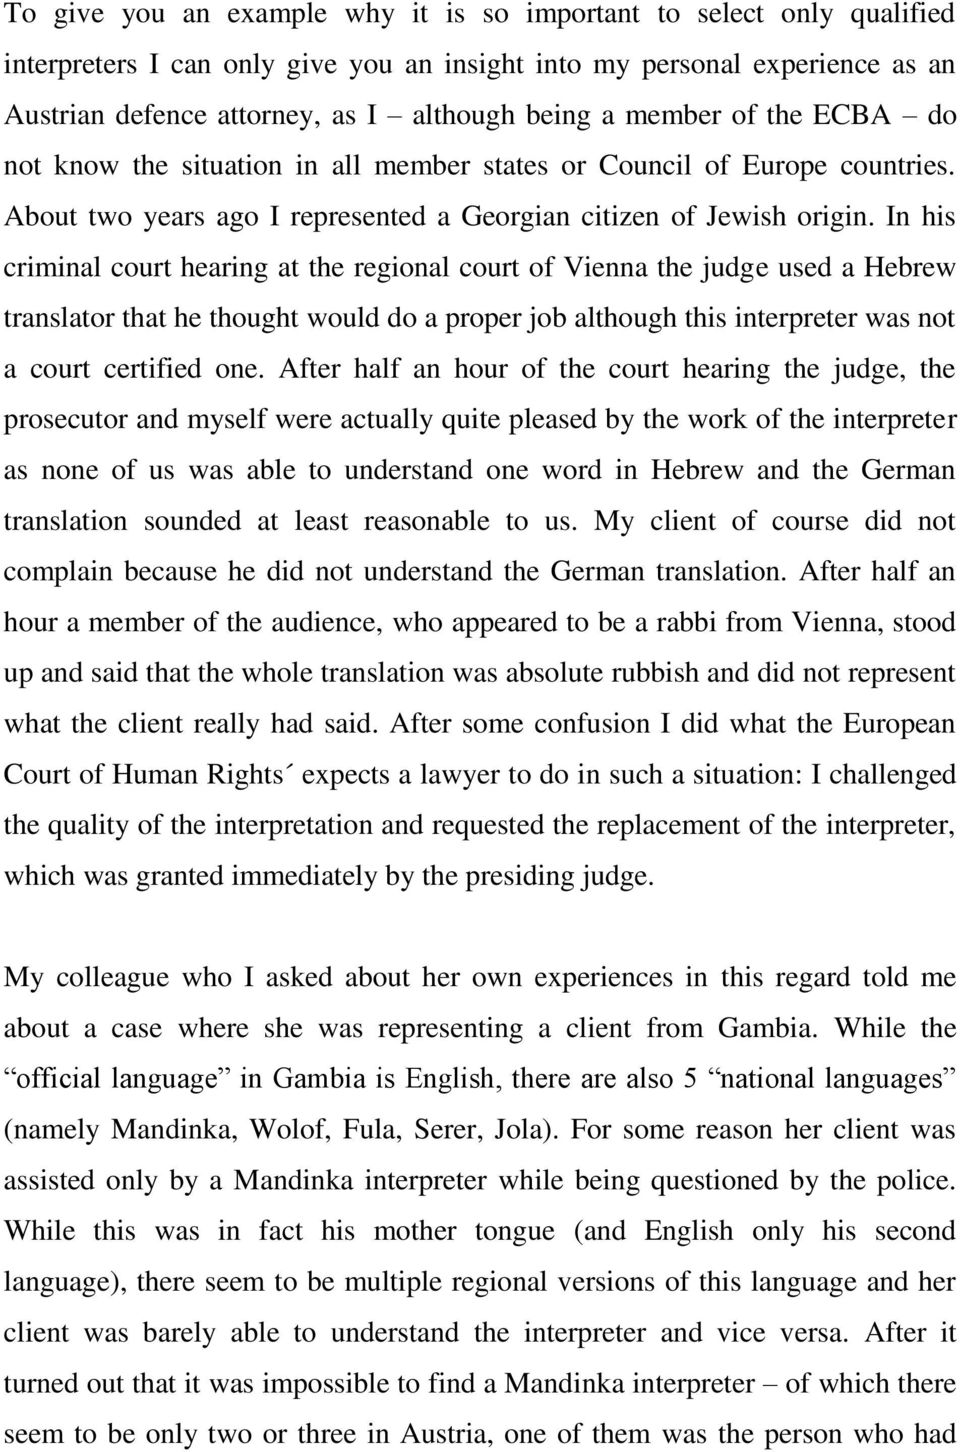 In his criminal court hearing at the regional court of Vienna the judge used a Hebrew translator that he thought would do a proper job although this interpreter was not a court certified one.